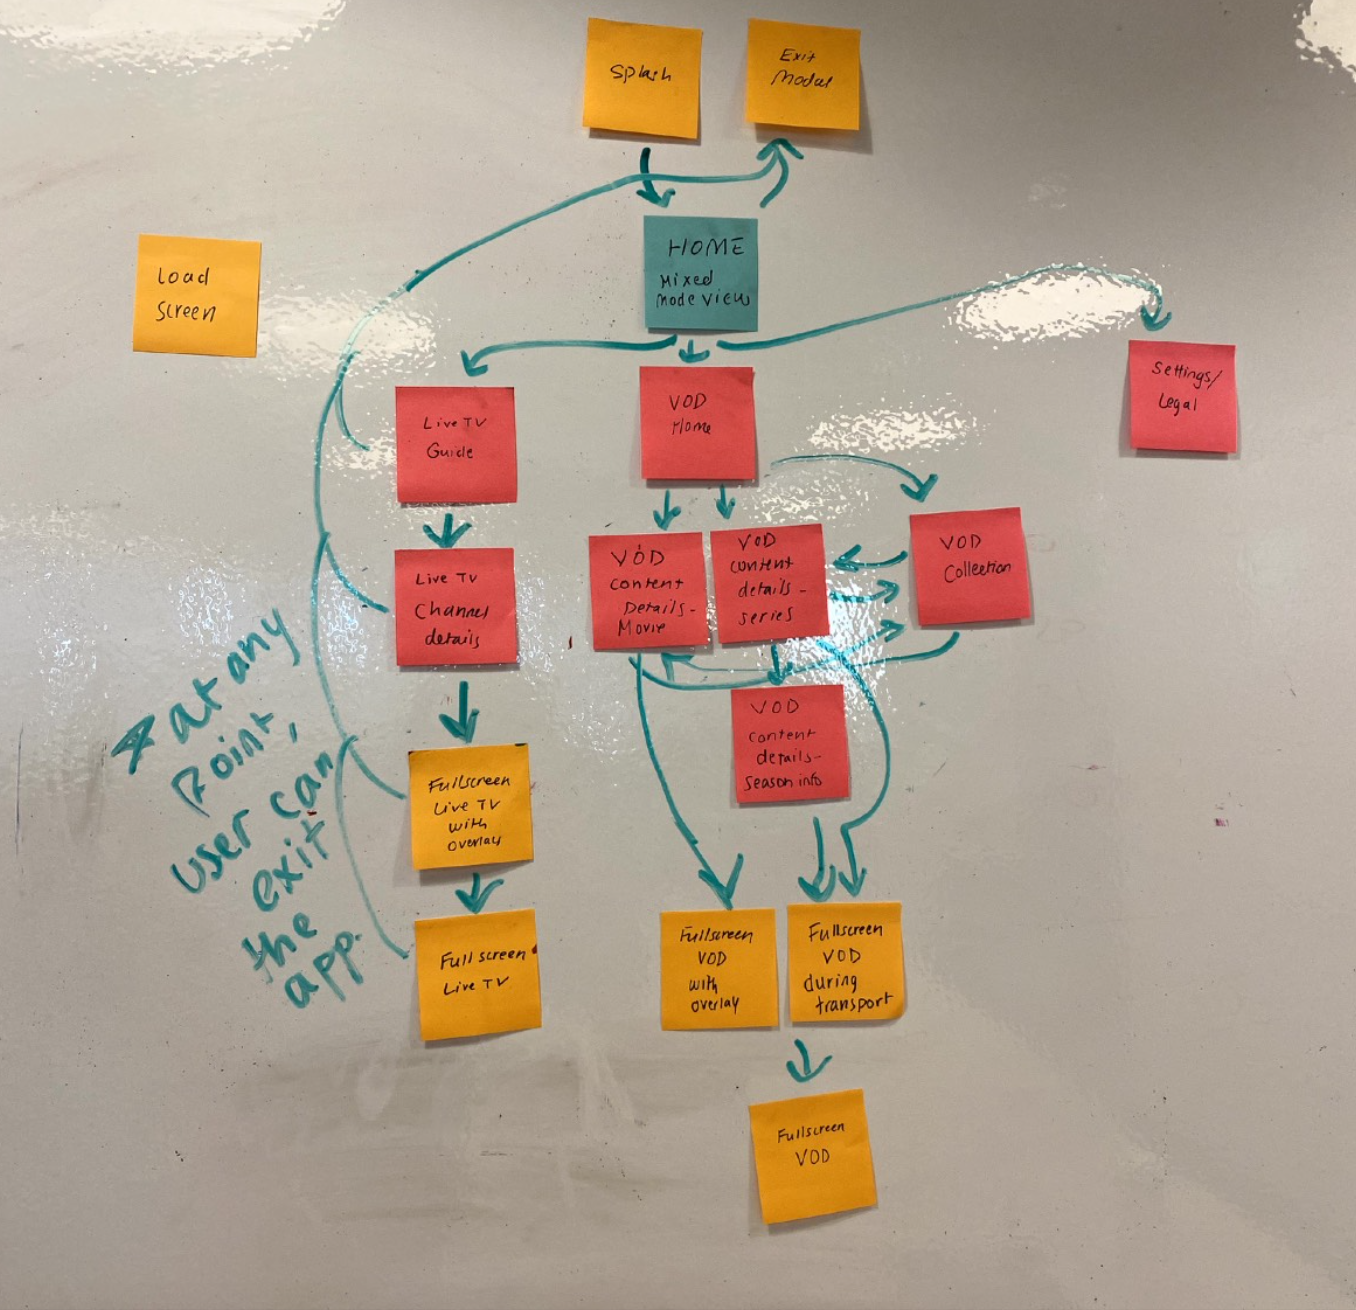 Revised user flows with clear arrows going back and forth.